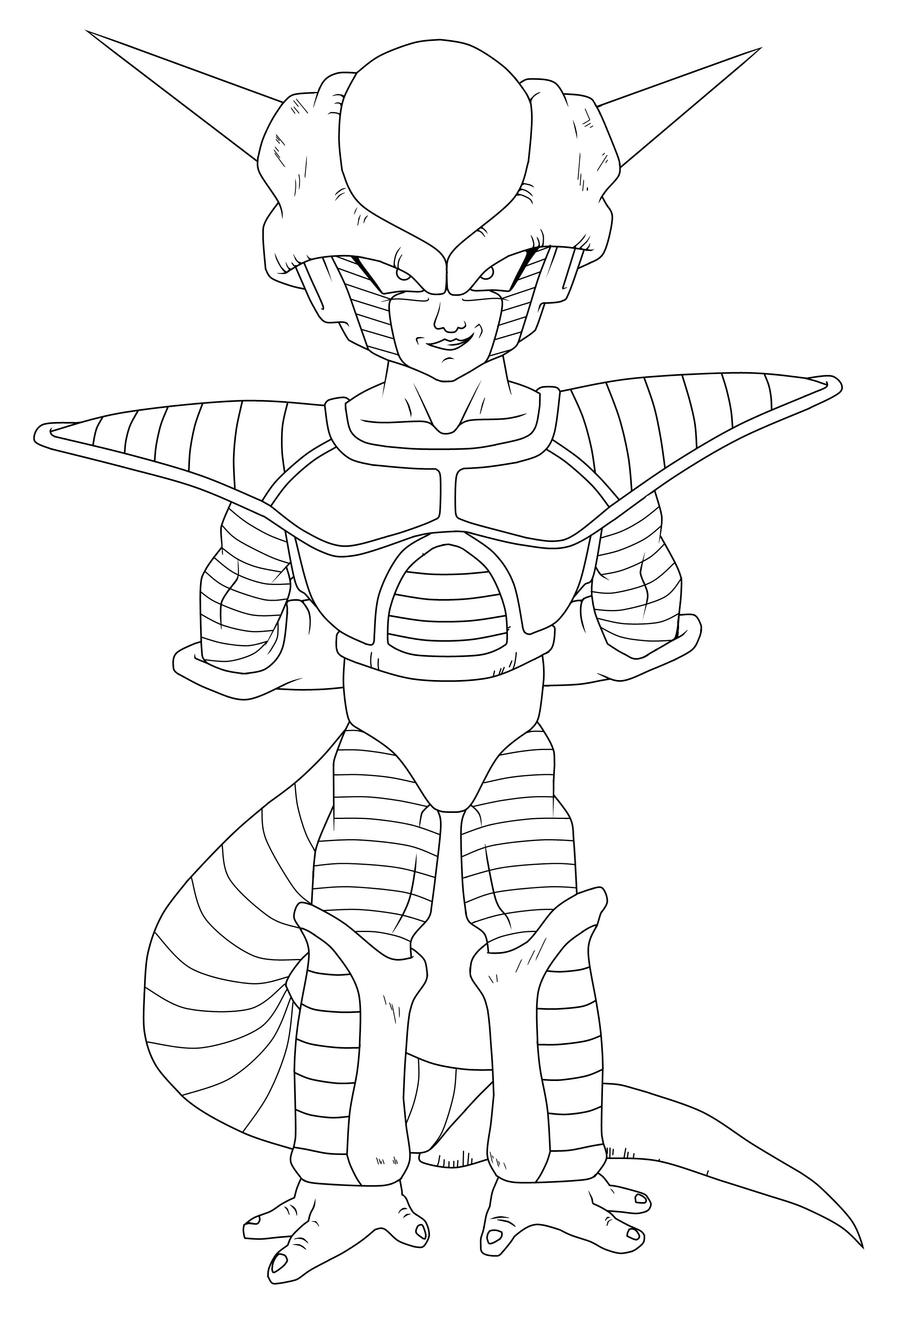 dbz coloring pages frieza - photo#3